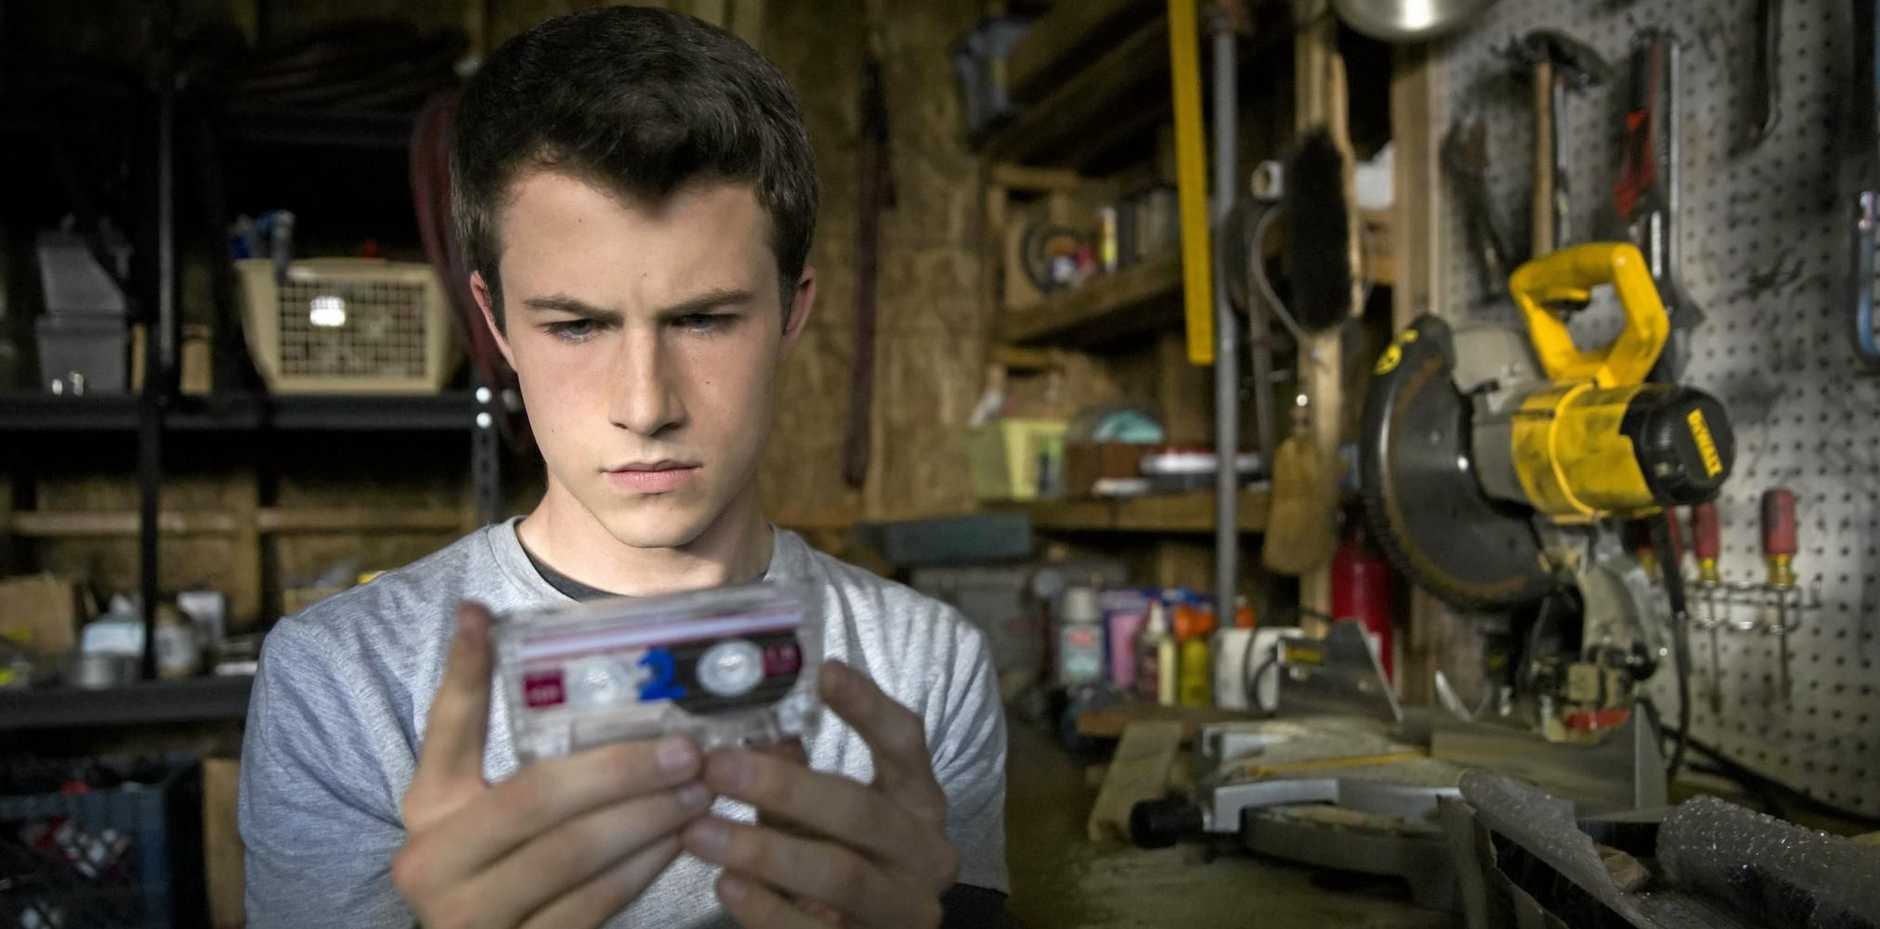 Dylan Minnette plays Clay Jensen in Netflix streaming series 13 Reasons Why, which has been criticised by some mental health experts and educators.